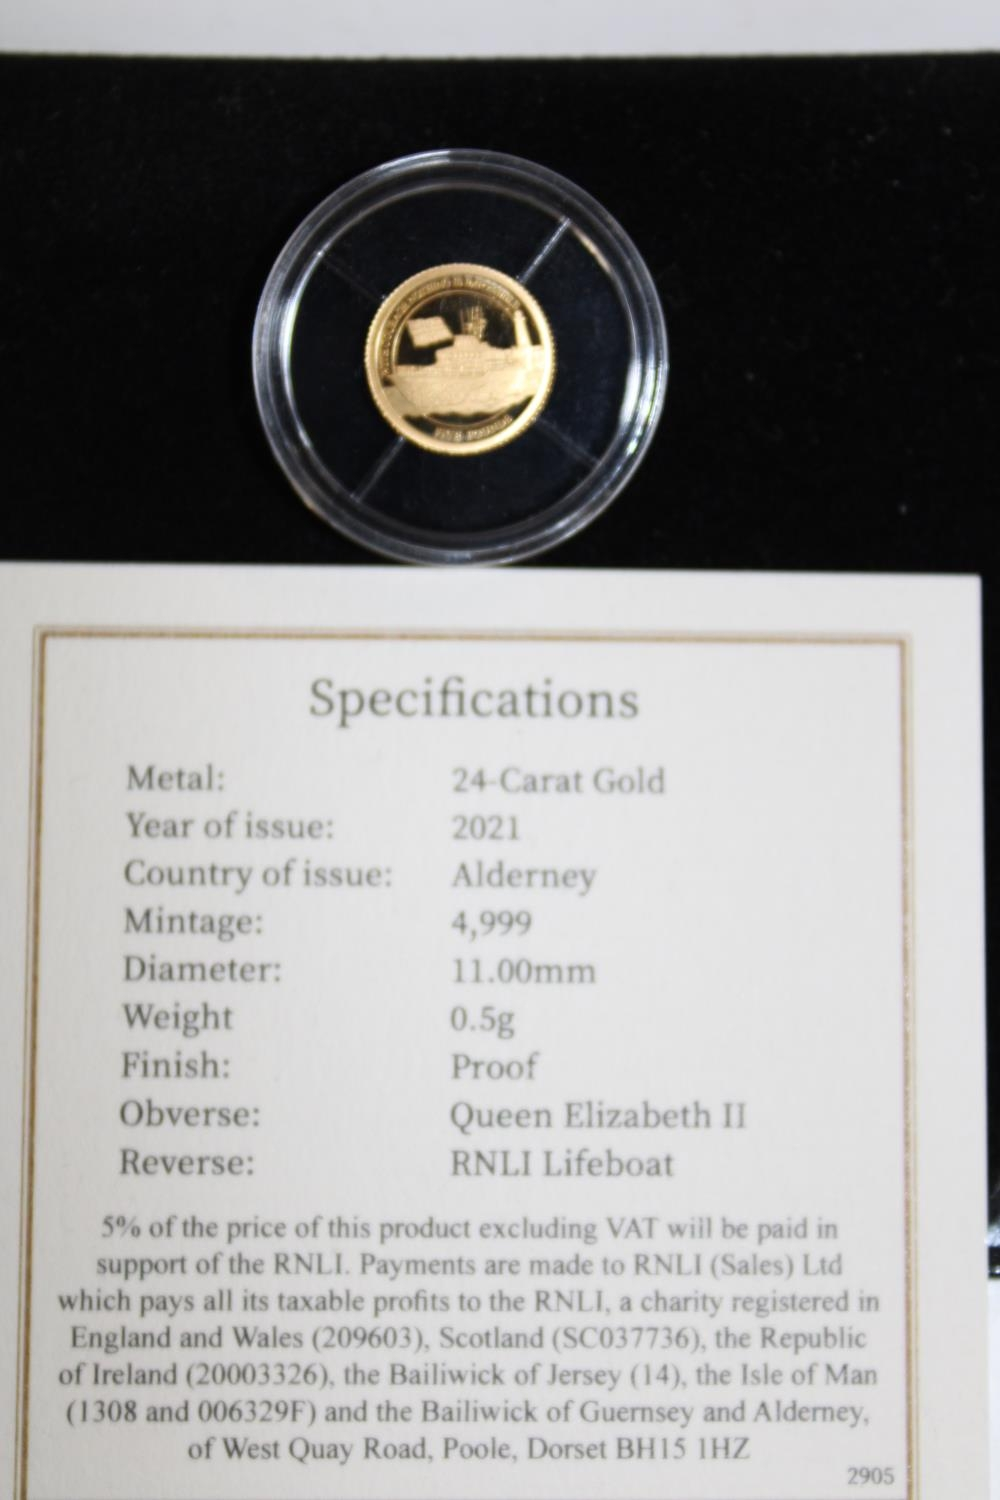 A 24ct 2021 gold Alderney proof coin 0.5 grams